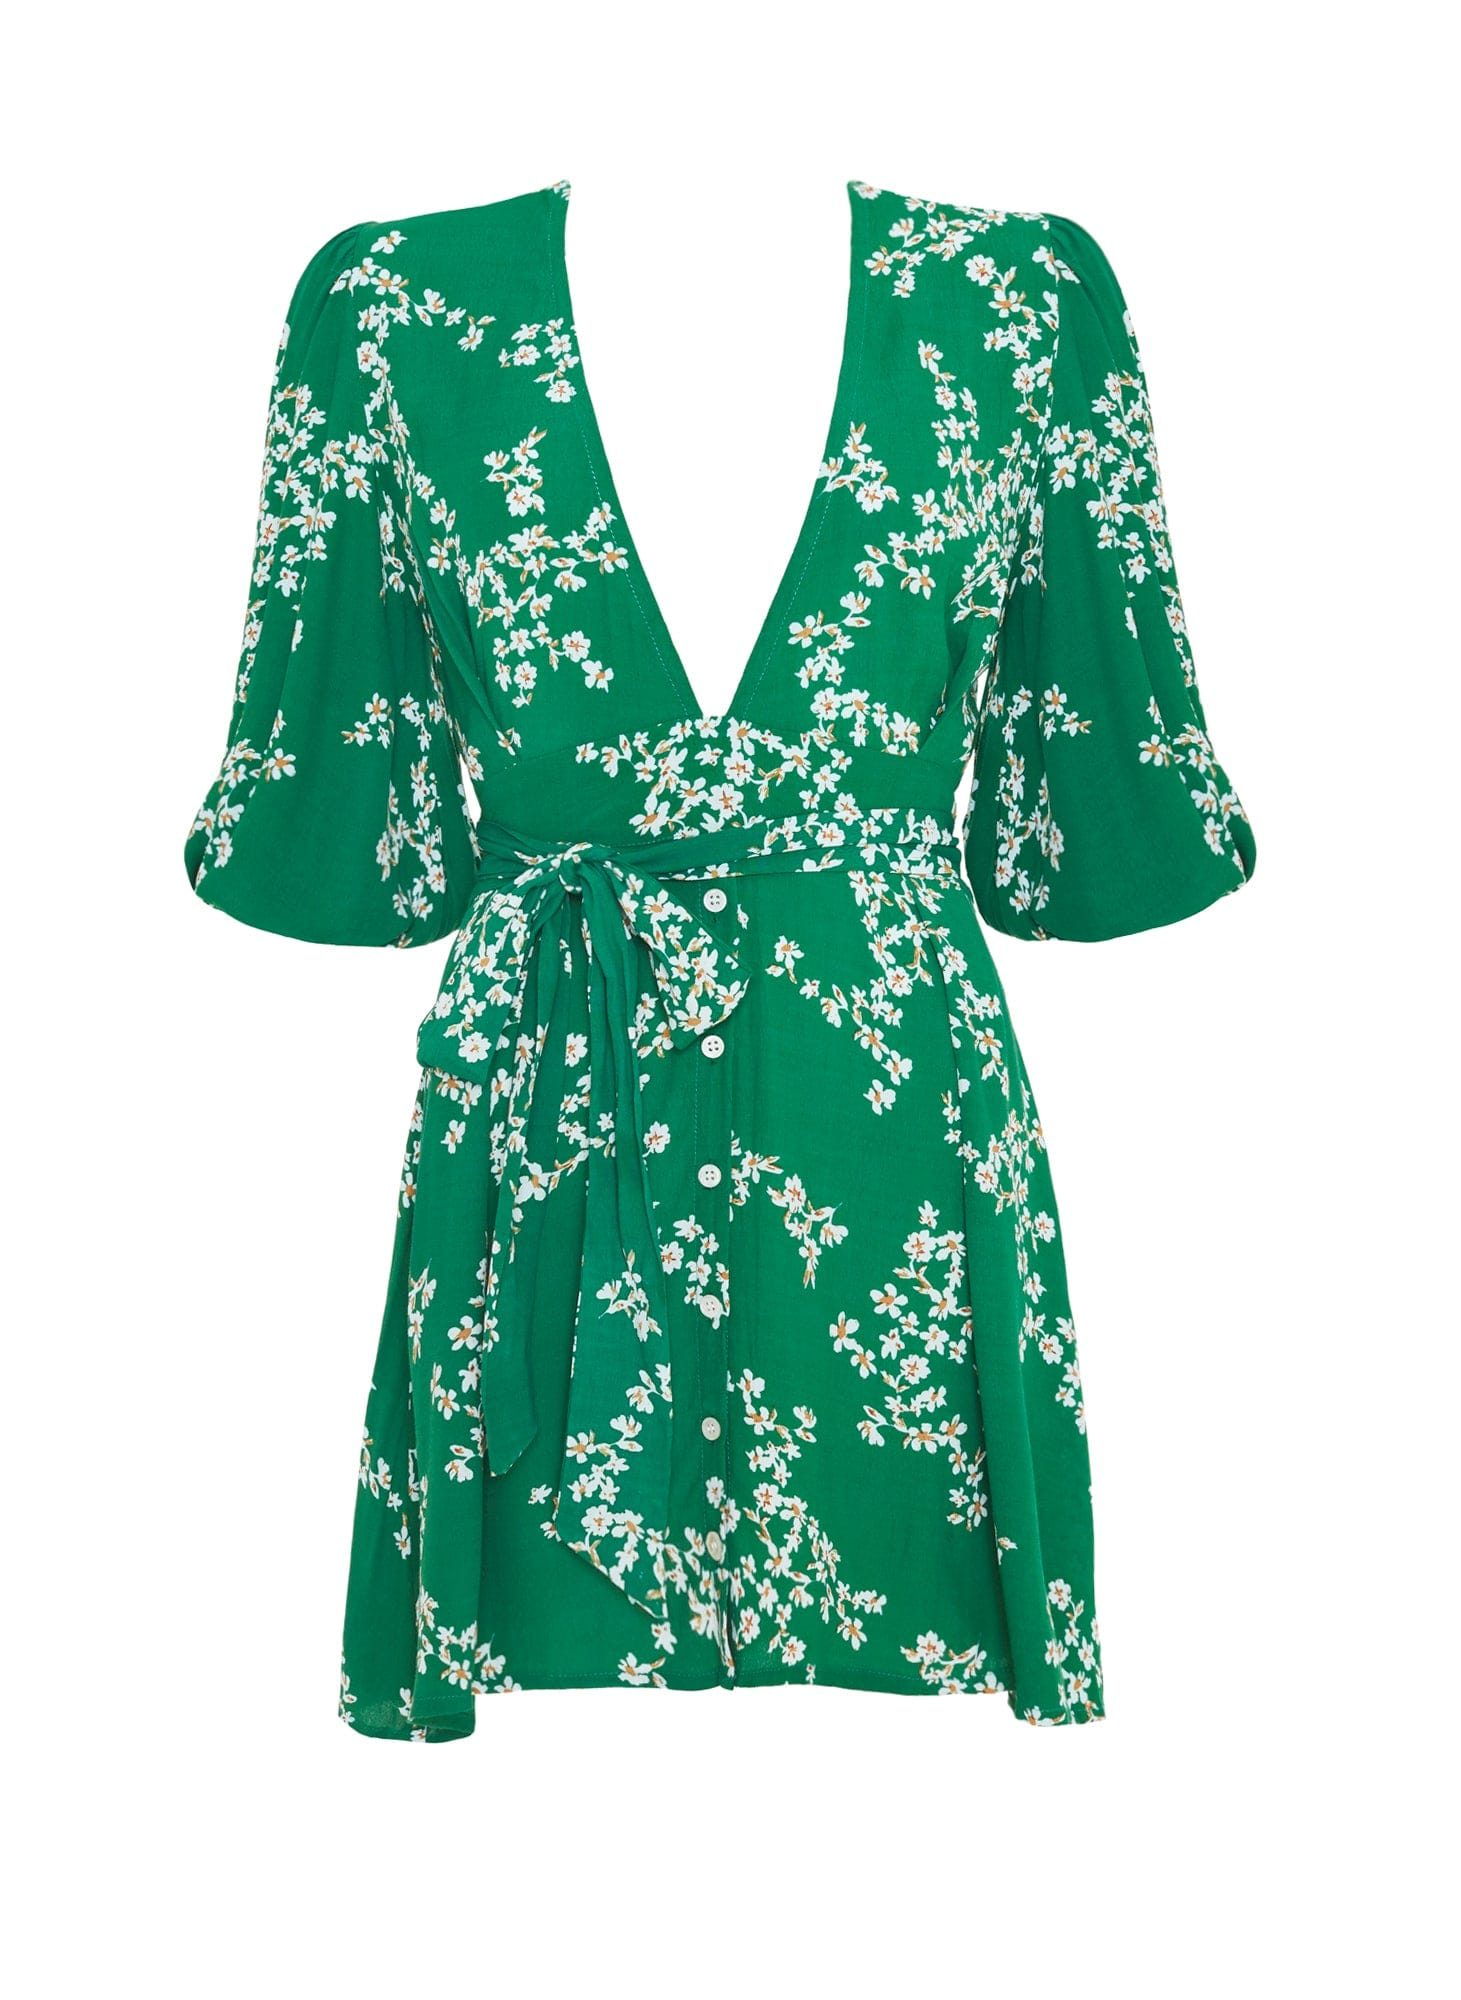 CAP ESTEL FLORAL PRINT - MARGOT DRESS